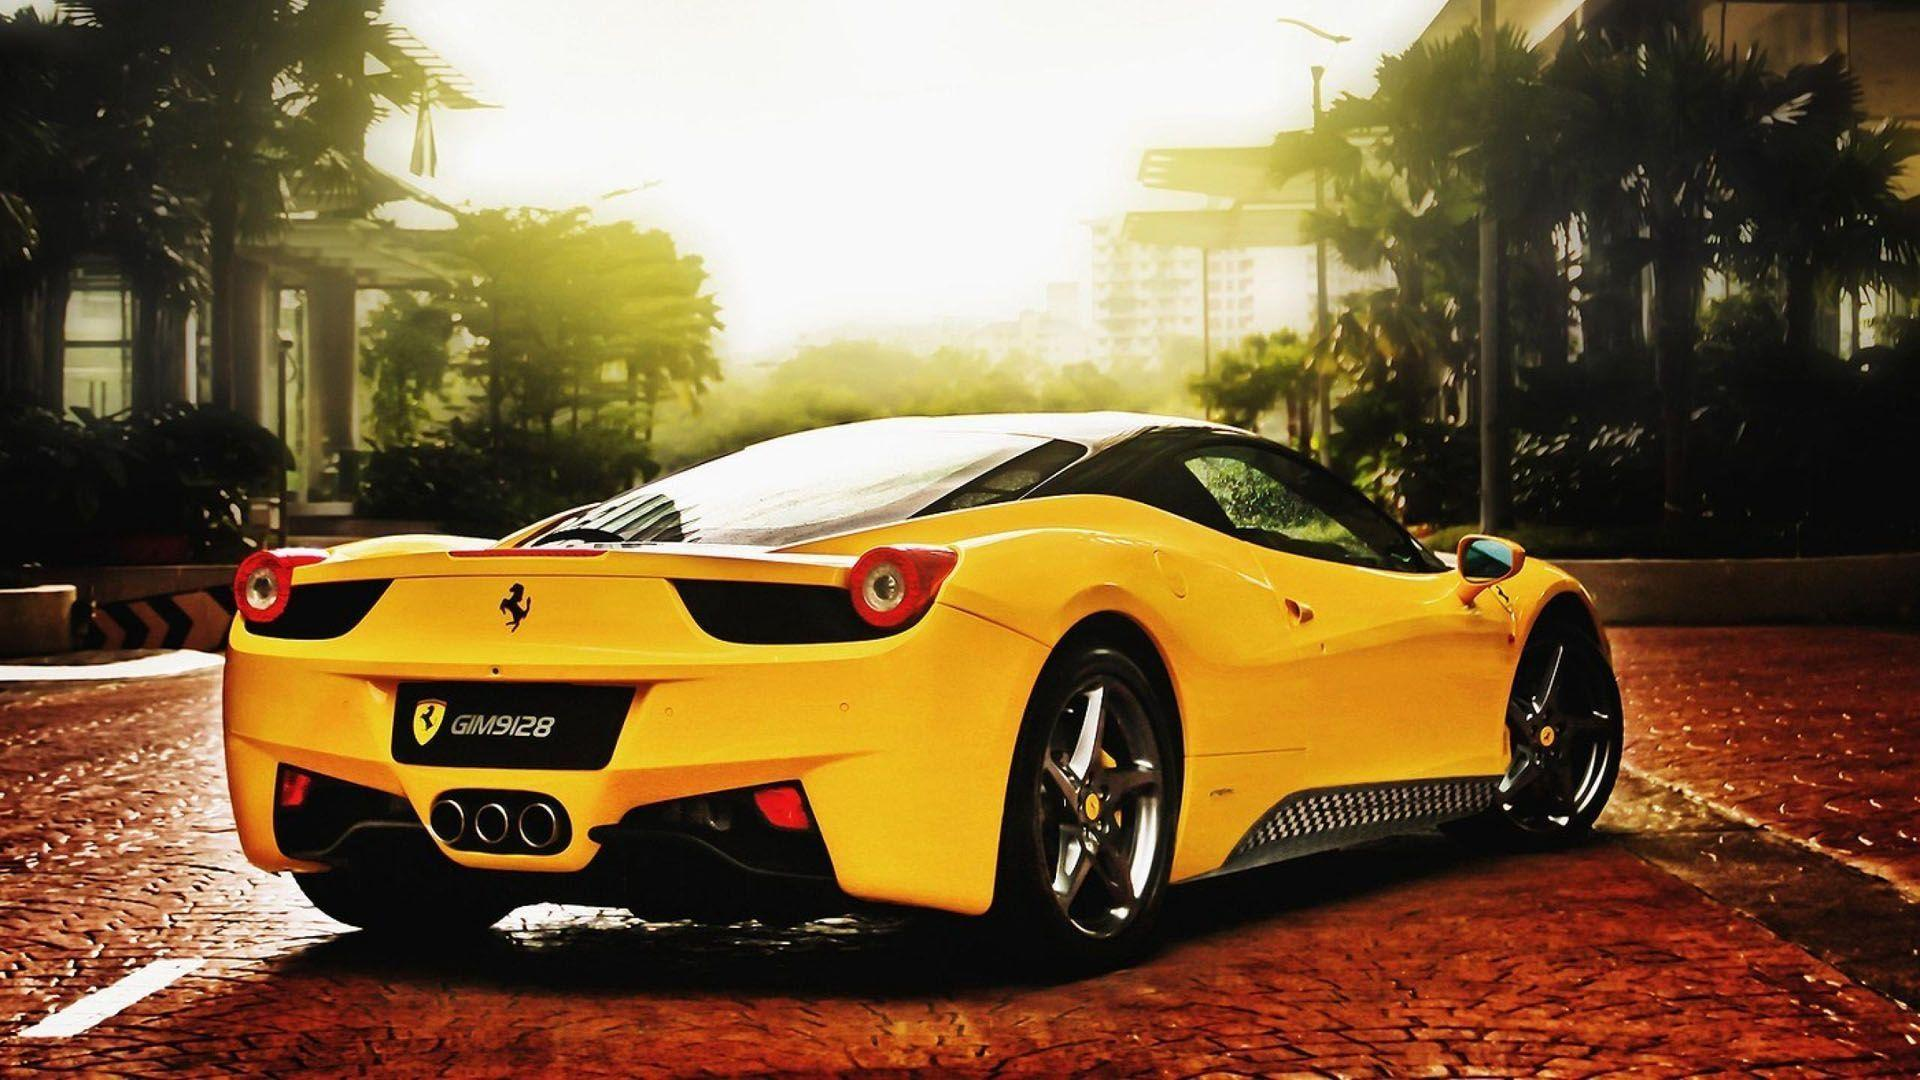 Hd Ferrari Car Wallpapers 1080p Wallpaper Cave